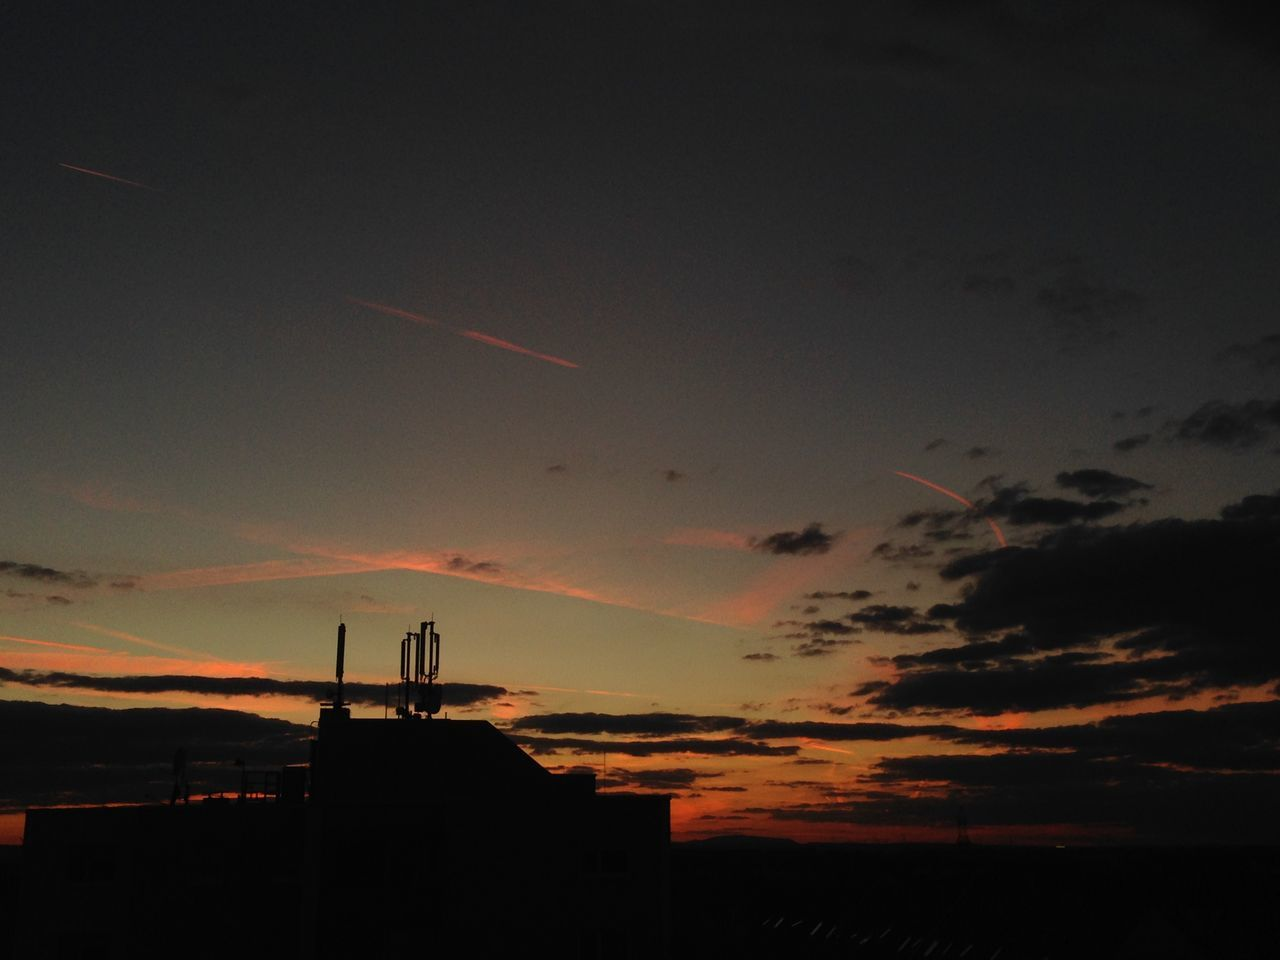 silhouette, sunset, sky, built structure, no people, vapor trail, architecture, outdoors, nature, contrail, airplane, day